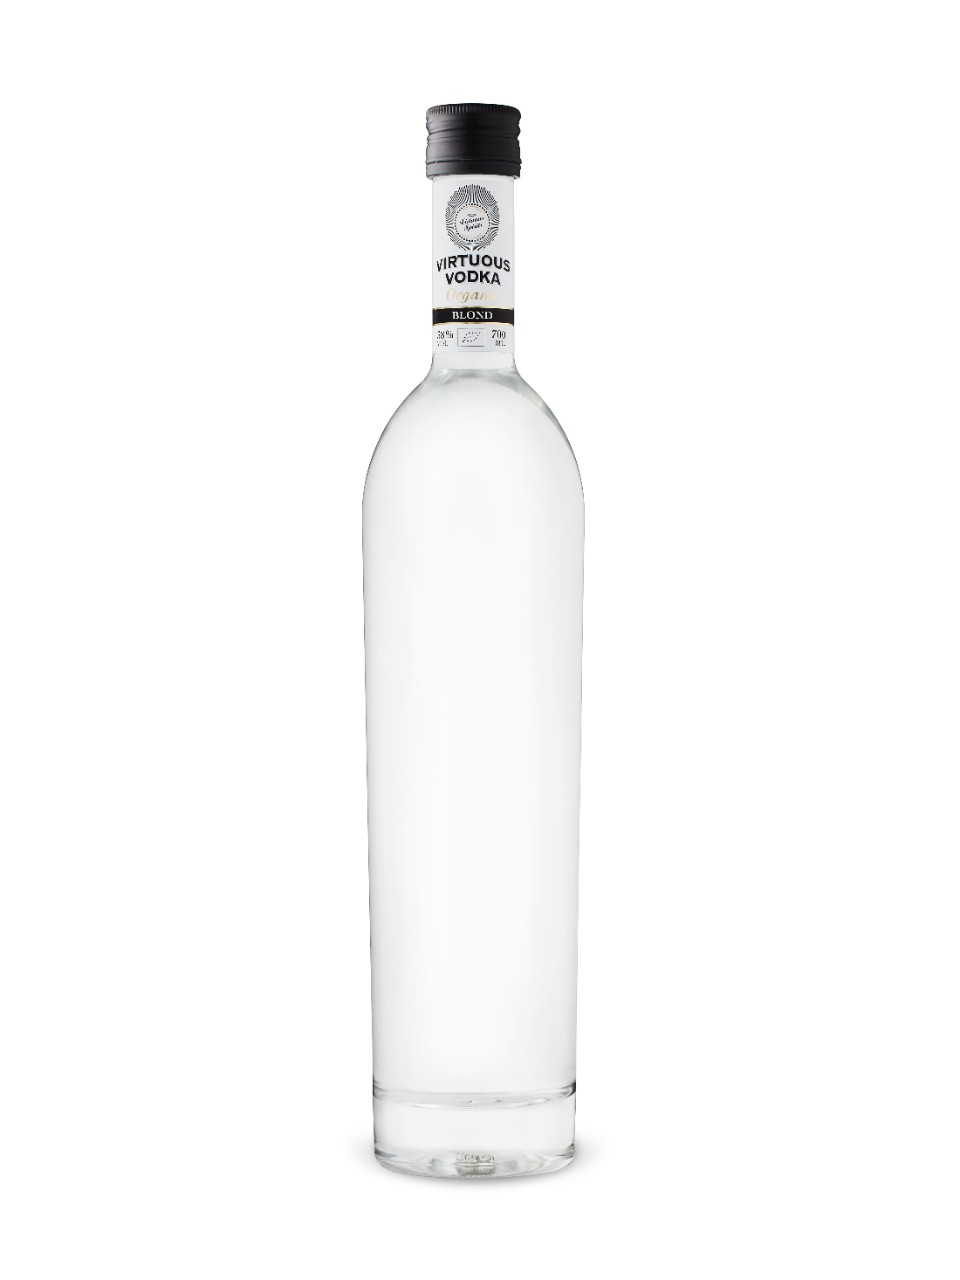 Virtuous Vodka Organic Blond from LCBO